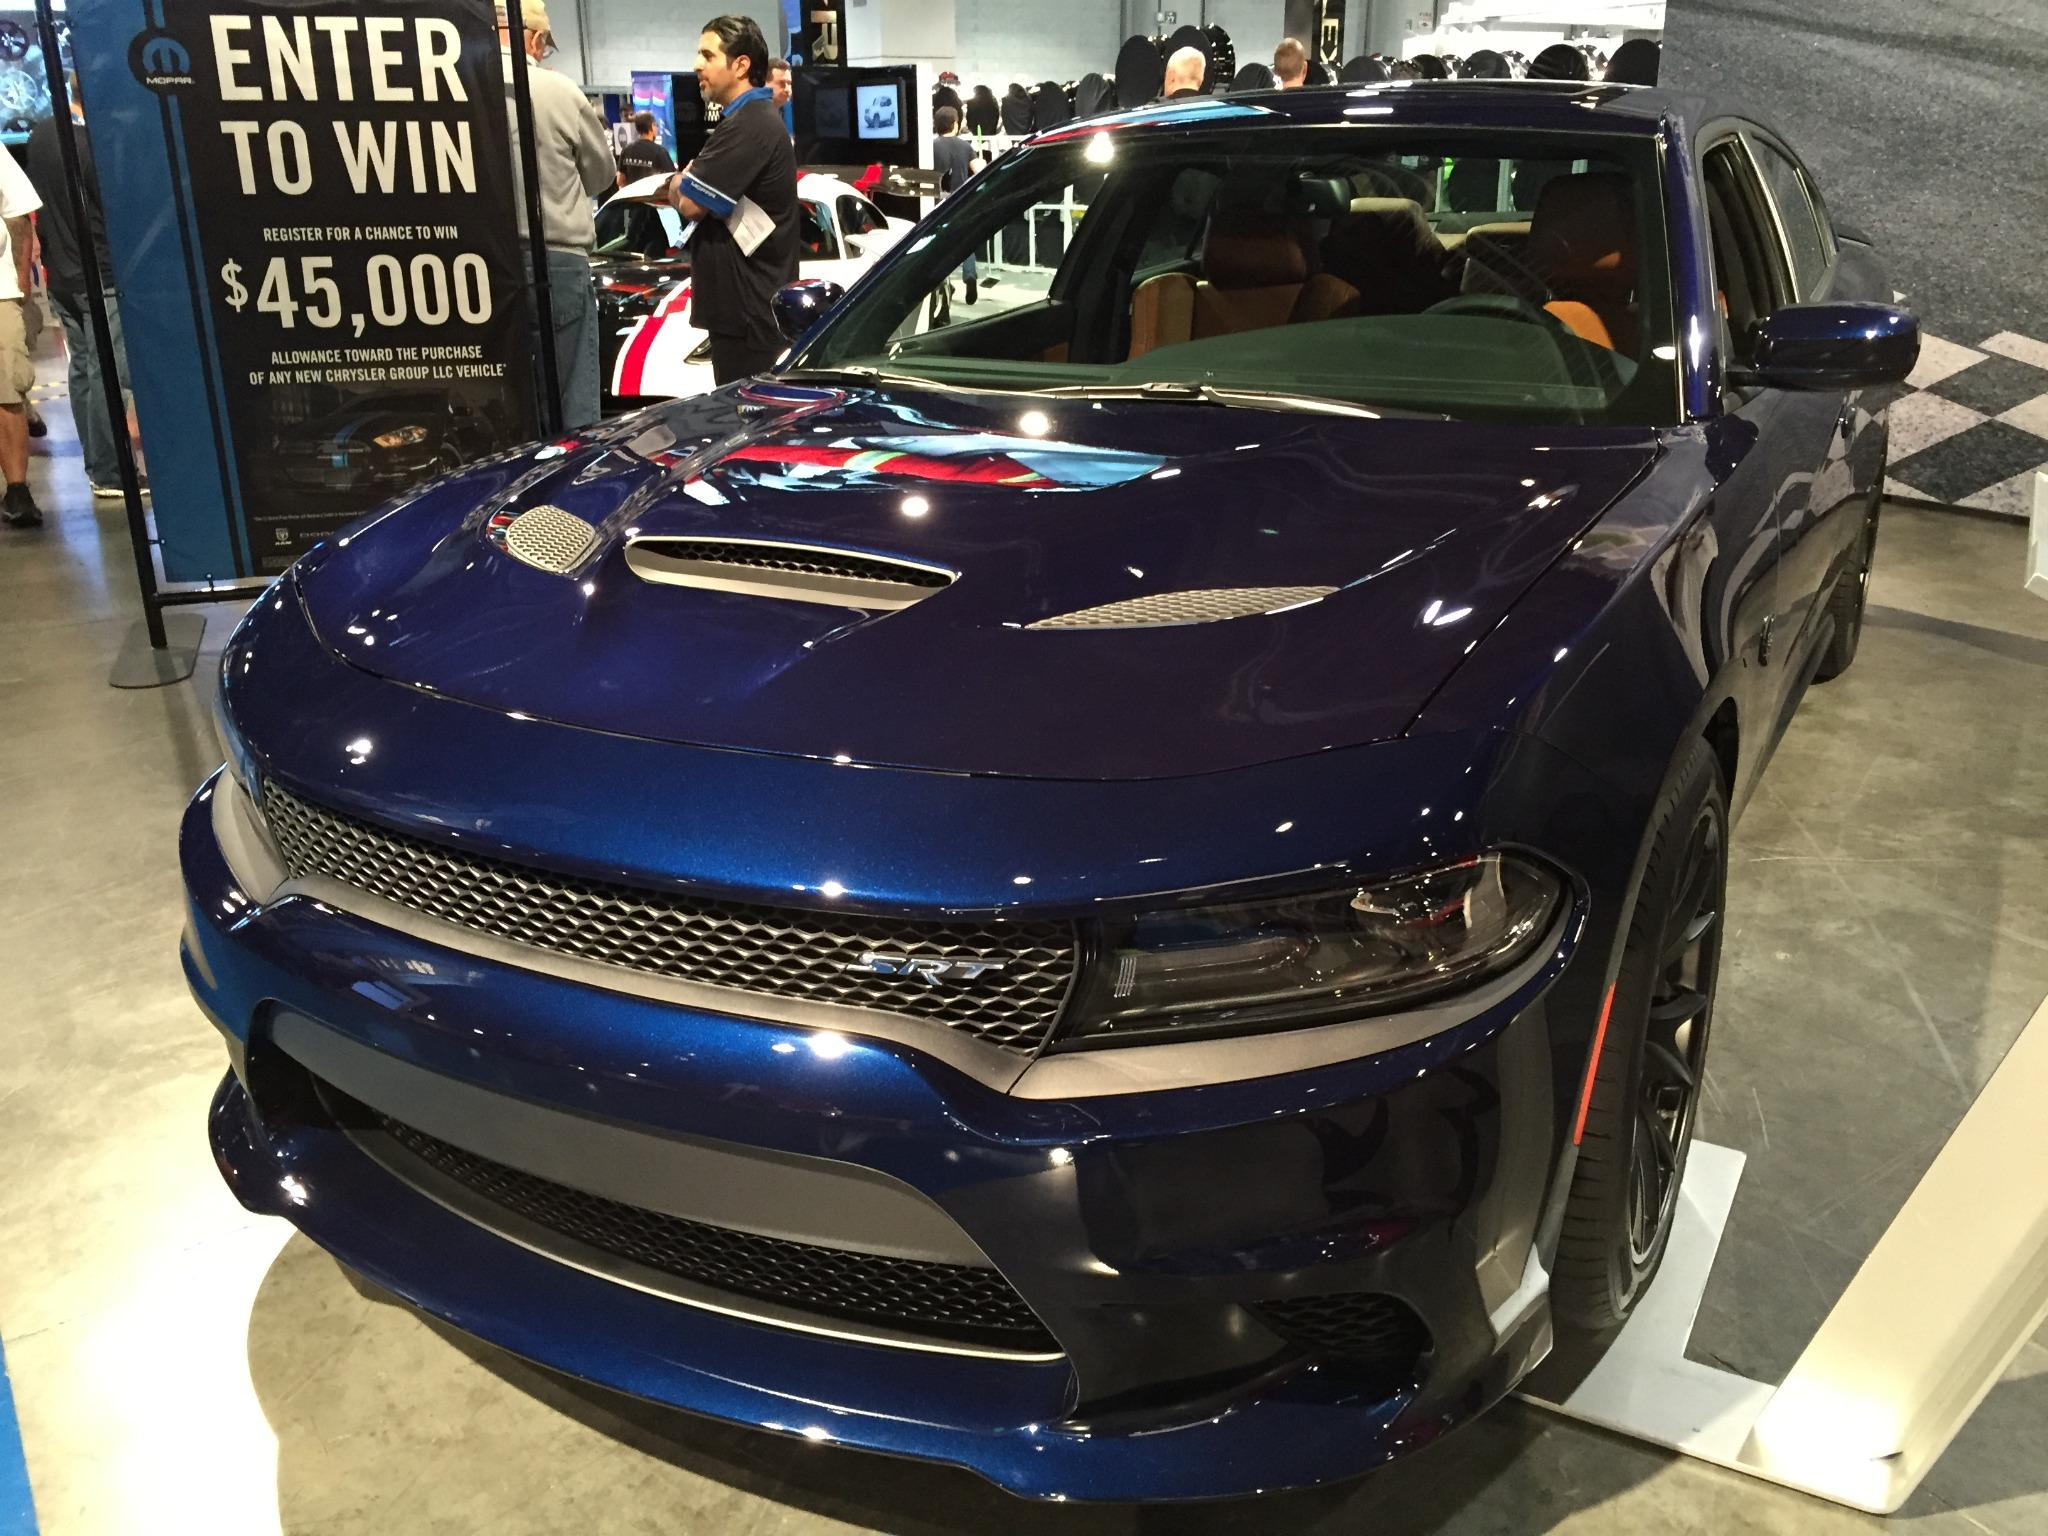 Pennzoil on twitter the 2015 dodge charger drivesrt hellcat is a beauty in blue at semashow sema2014 rd http t co nqidwn2yln